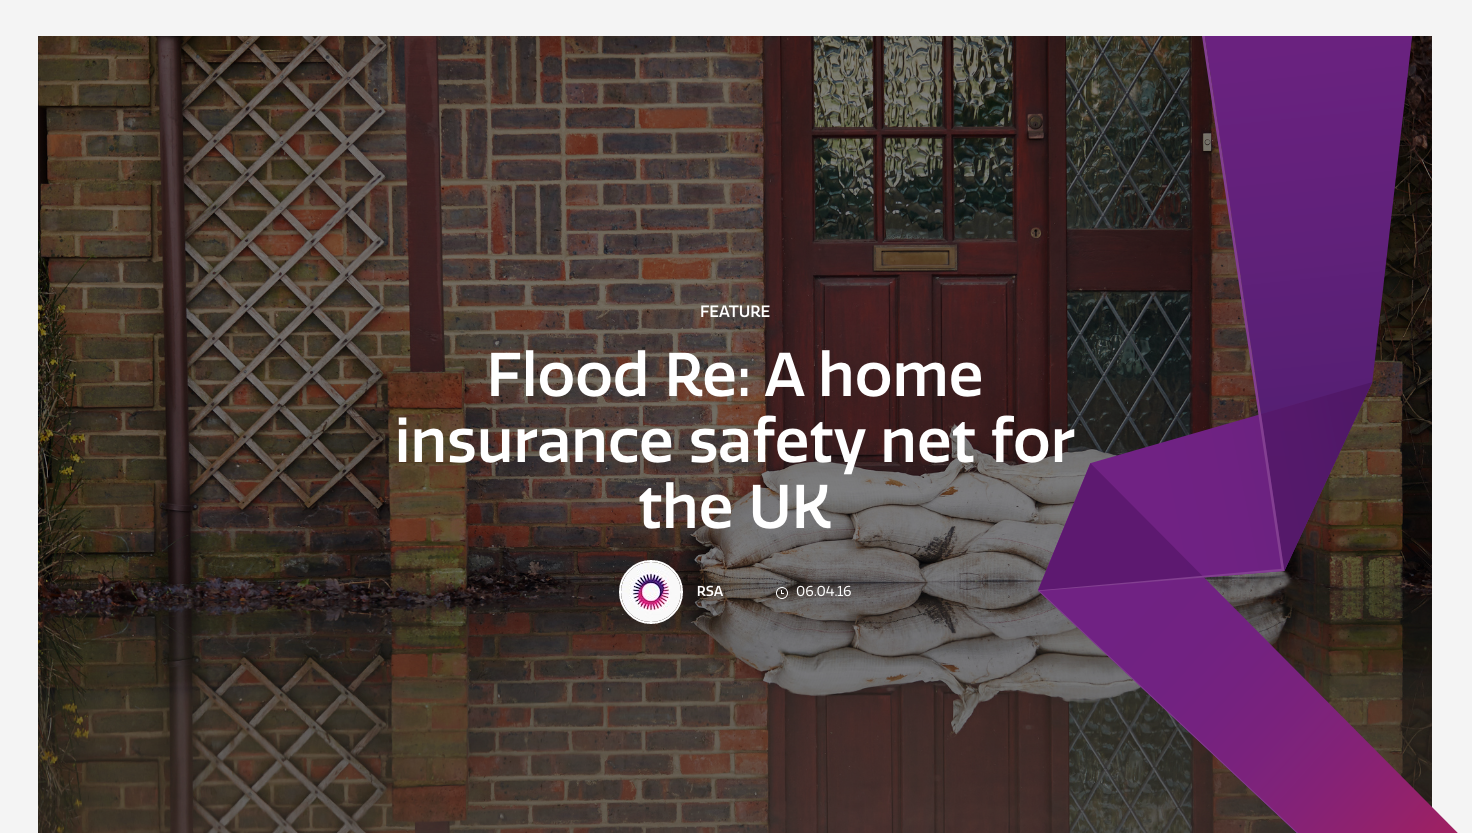 Image from RSA website